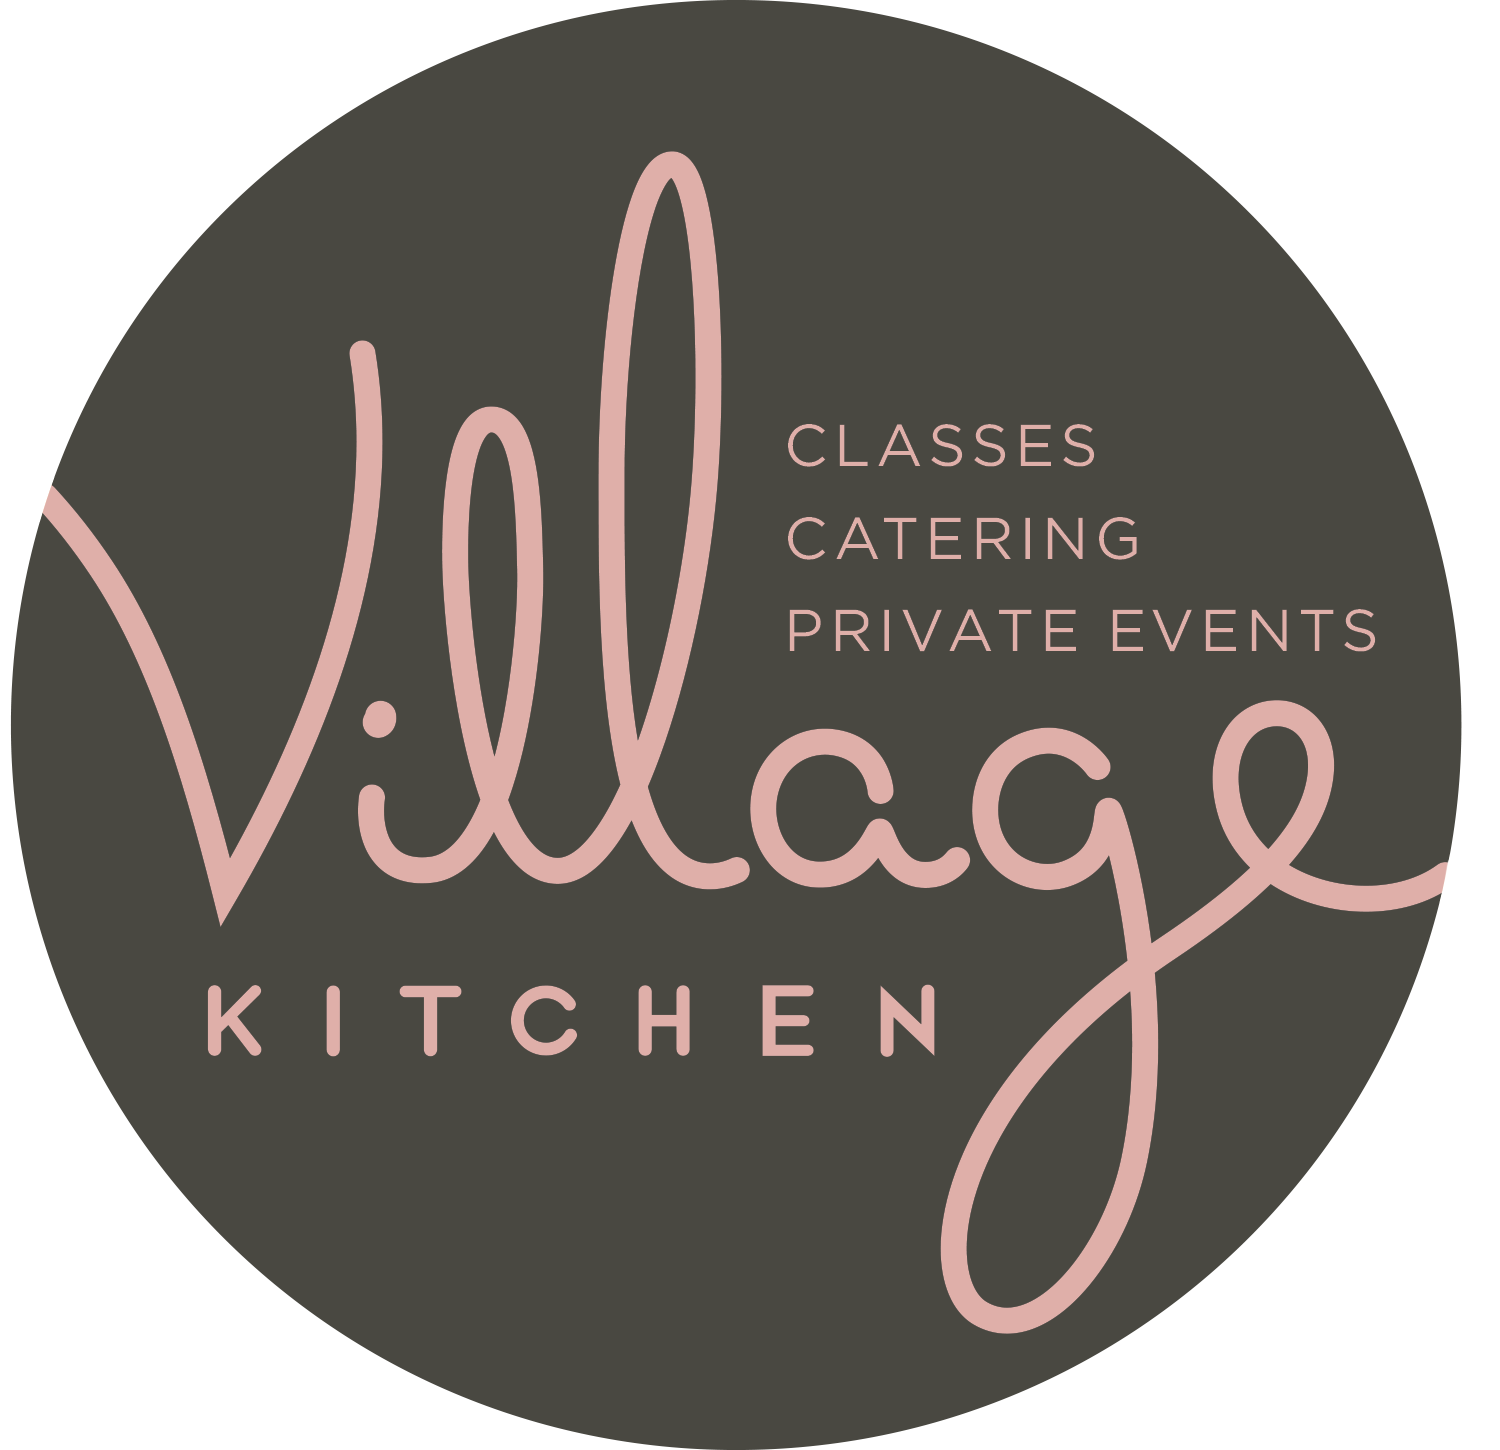 Village Kitchen/Sri Bella - Branding that spanned store front signage, stationary and food packaging for Amazon Go